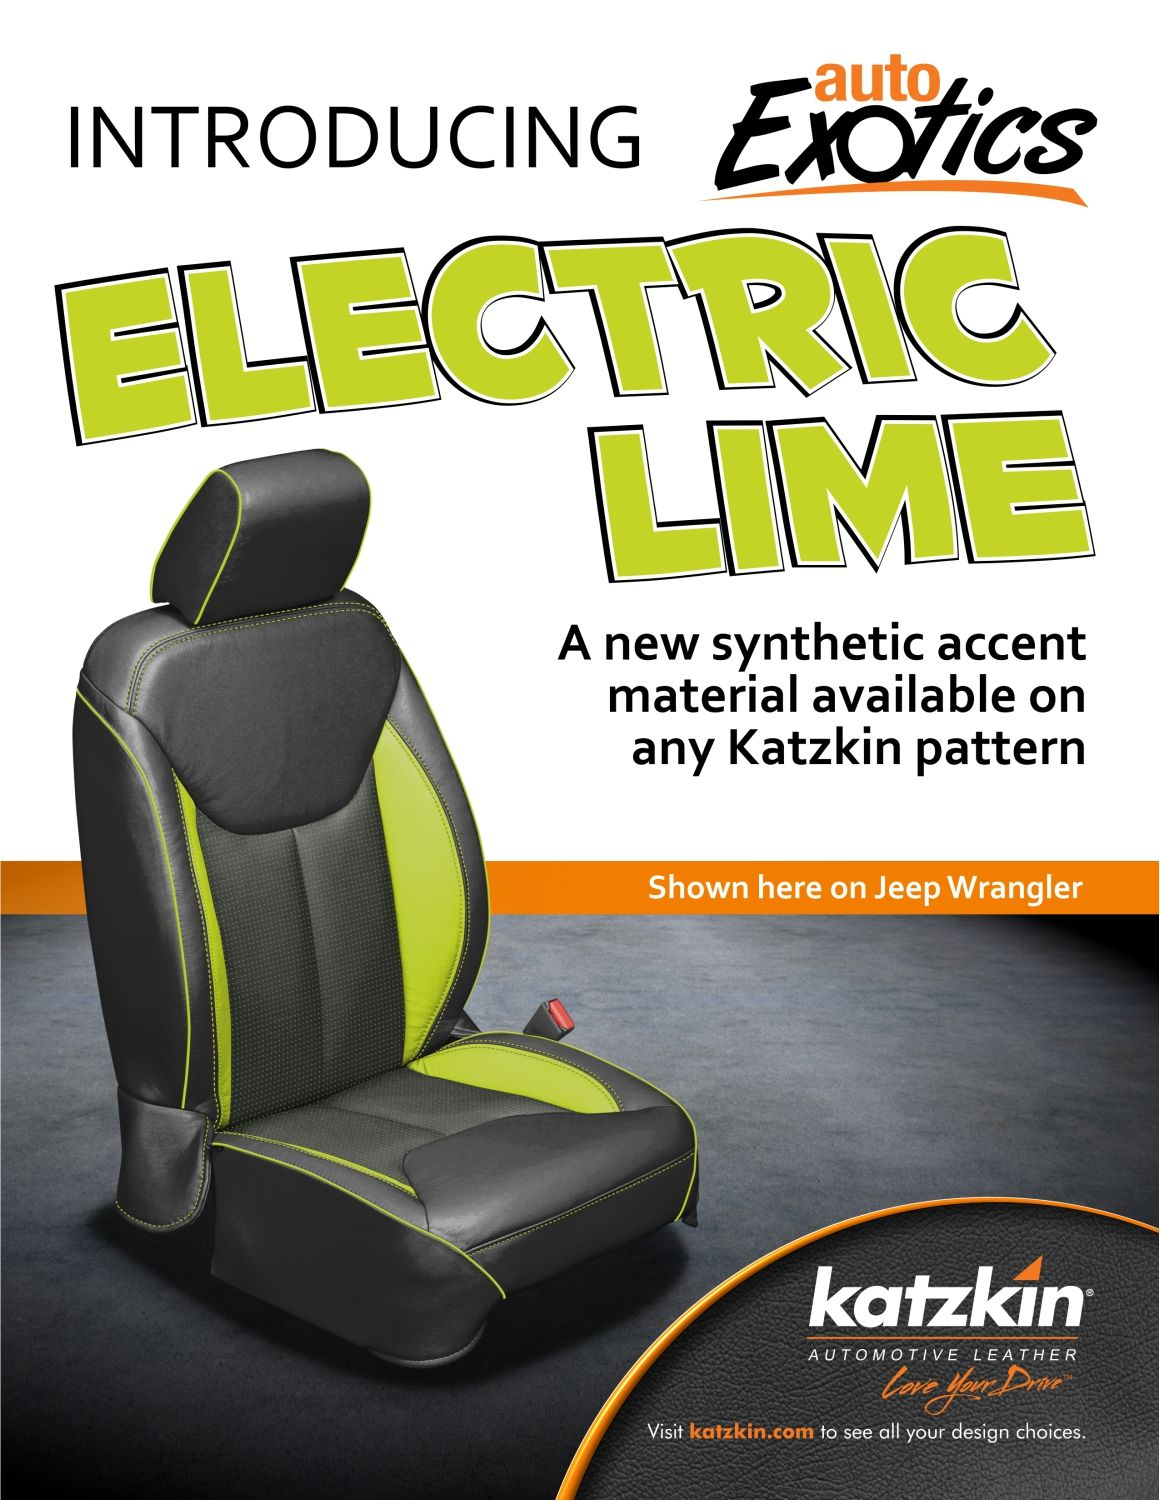 Electric Lime - Jeep Wrangler (e-Brochure)